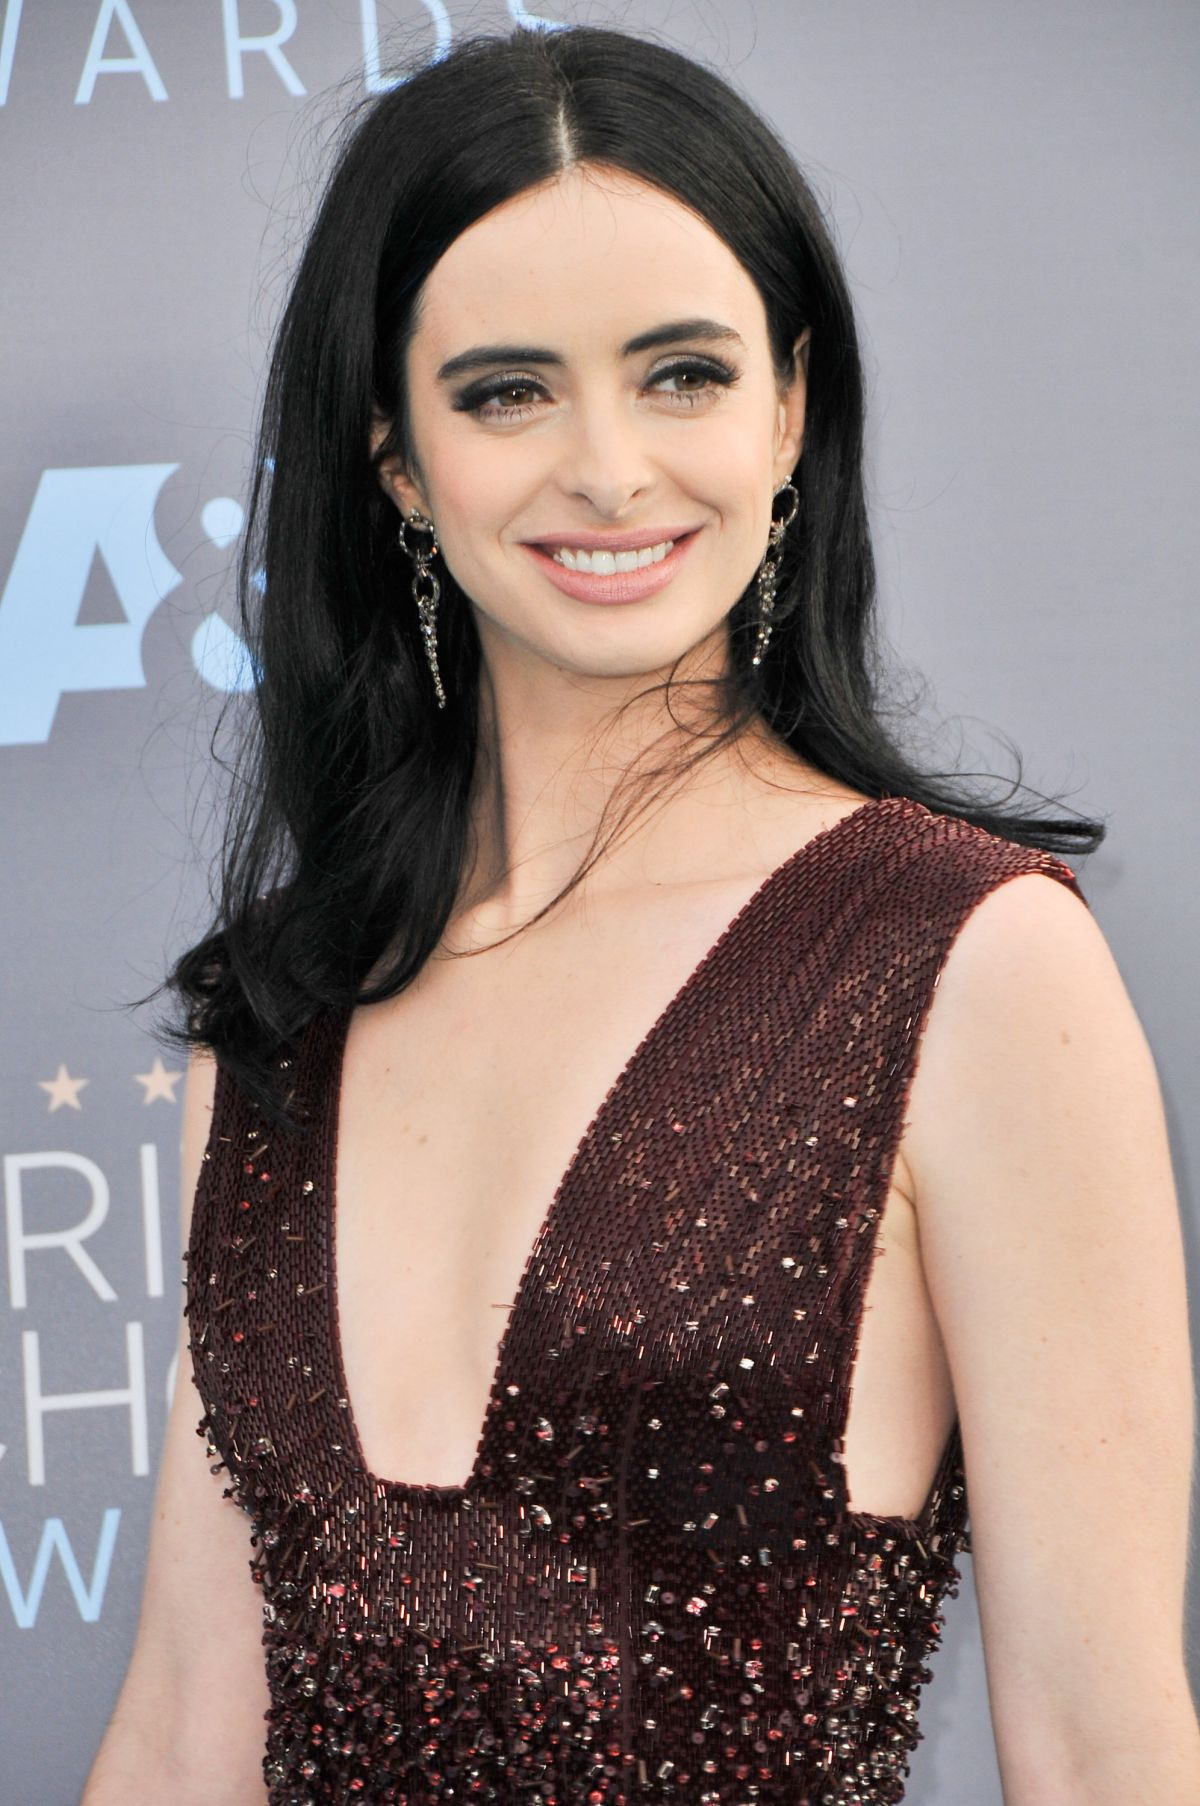 KRYSTEN RITTER at Critics's Choice Awards 2016 in Santa ...